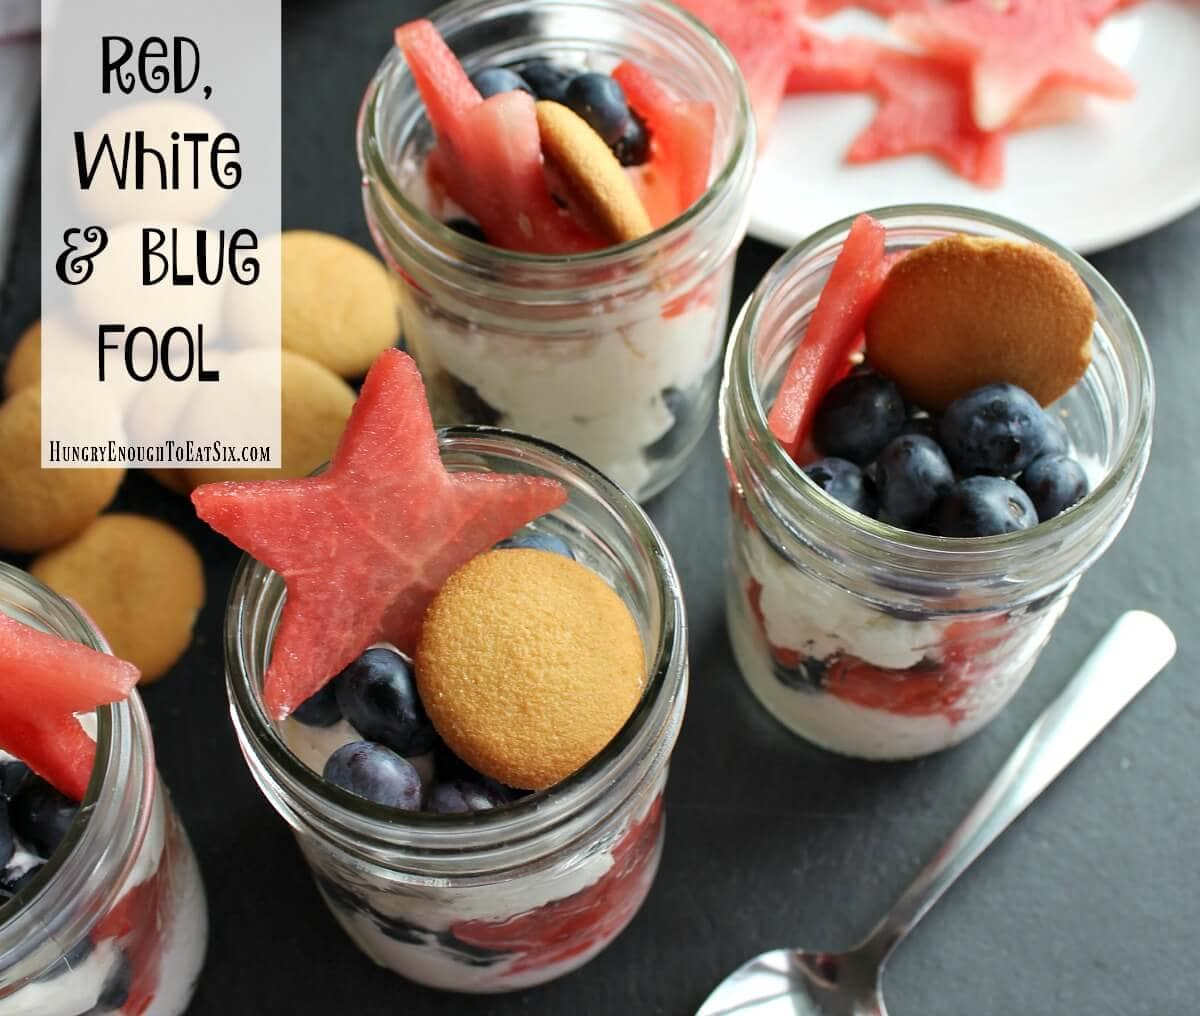 Small mason jars holding blueberries, watermelon stars and whipped cream.